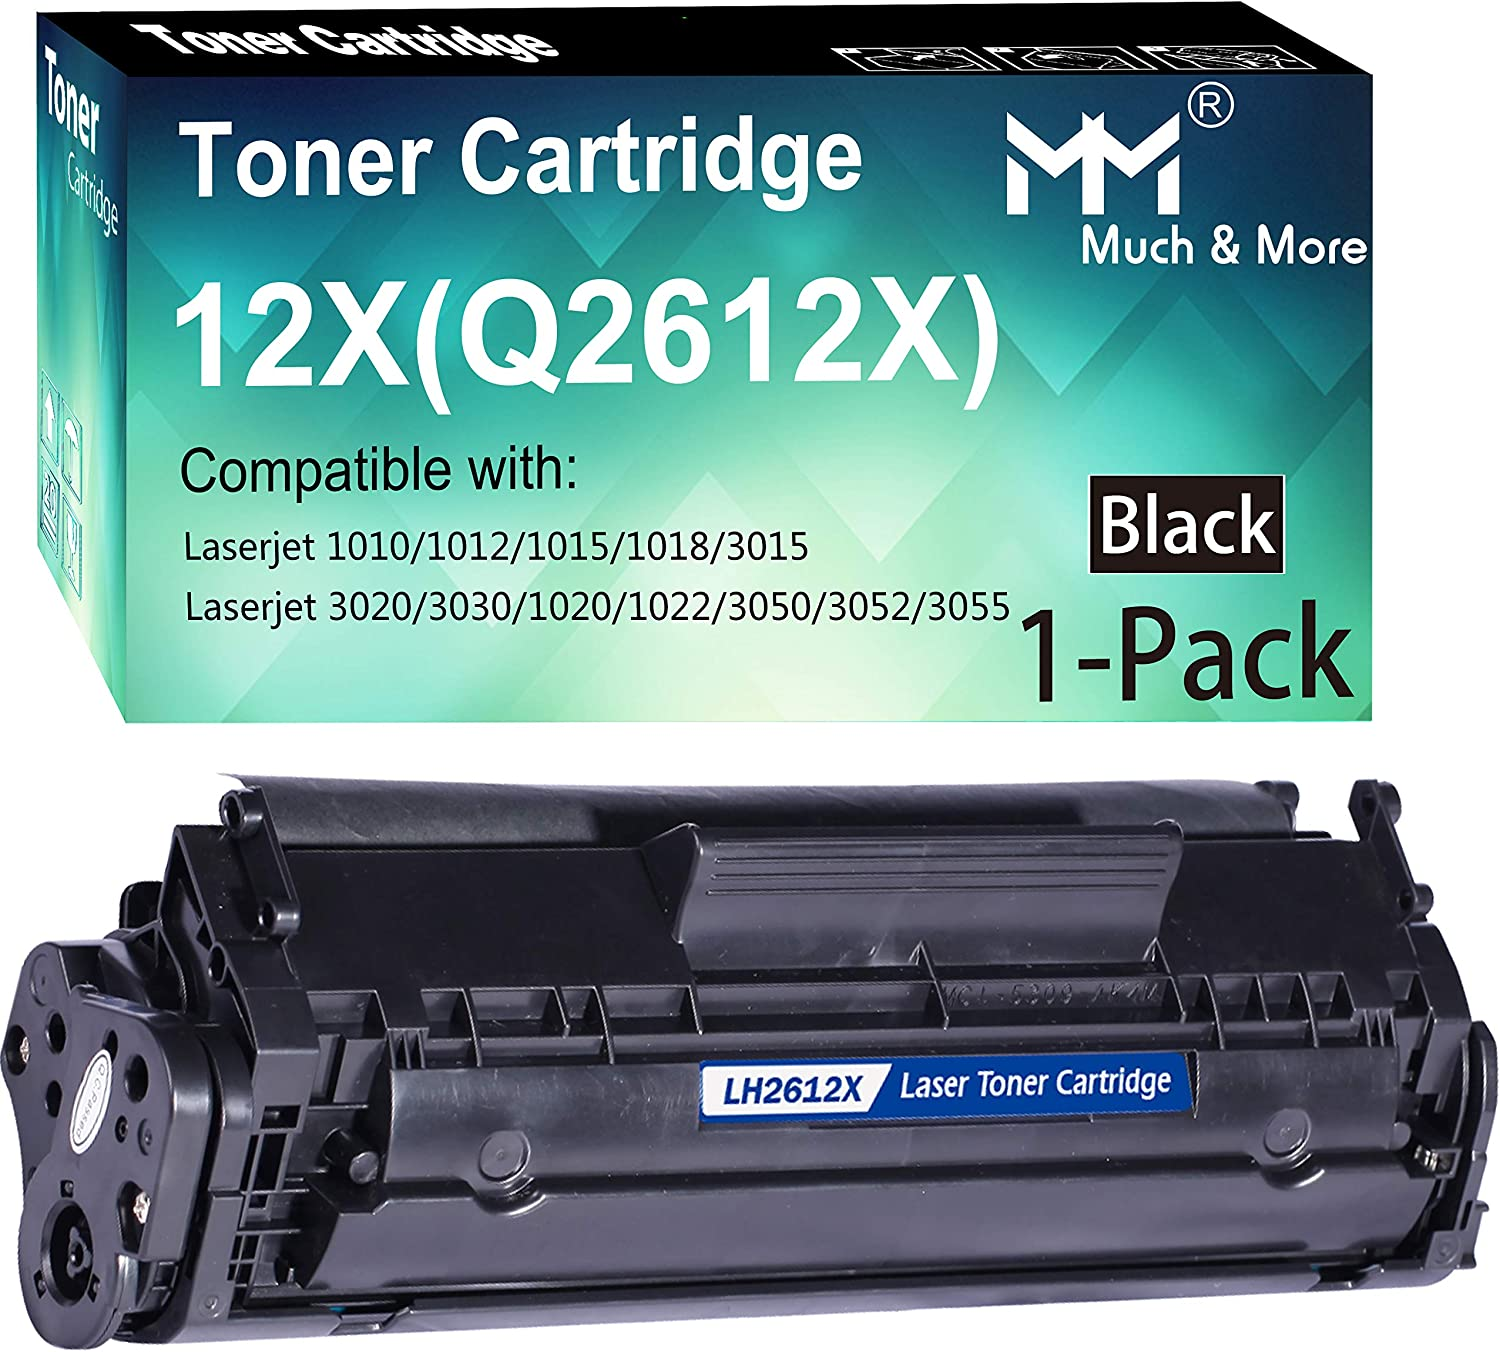 Compatible (1-Pack, 2500 Pages) 12X Q2612X High Yield Toner Cartridge 2612x Used for HP Laserjet 1012/1015/1018/1022/1020/3015/3020/3030/M1319f M1005 1022nw 1022n 3050/3050z Printer, by MuchMore